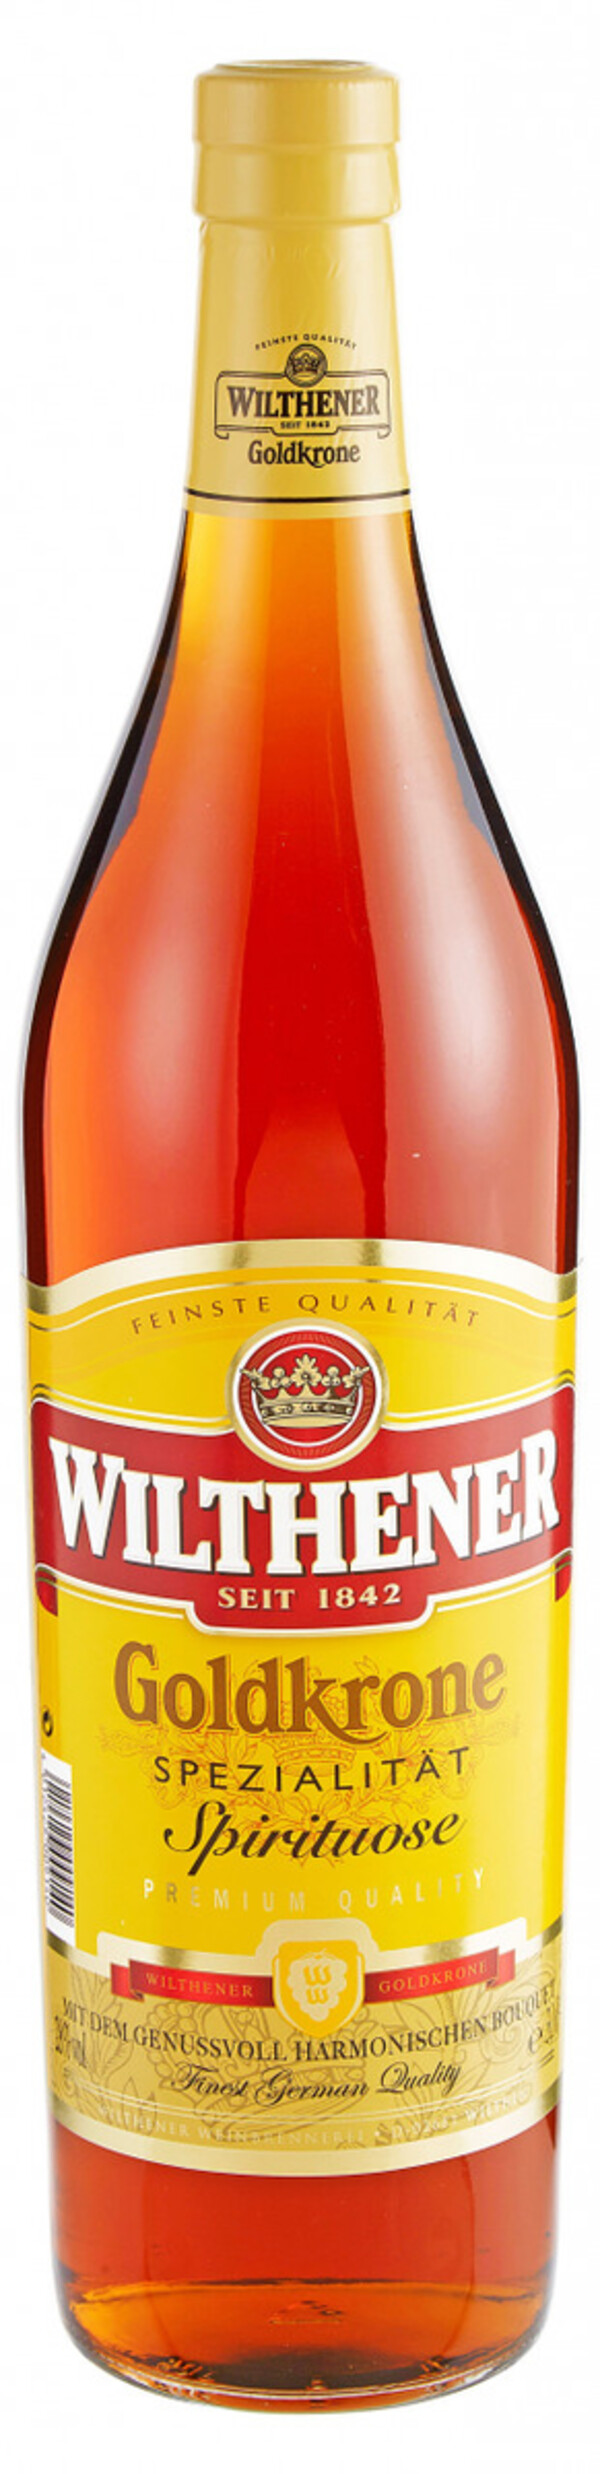 Wilthener Goldkrone - 3L